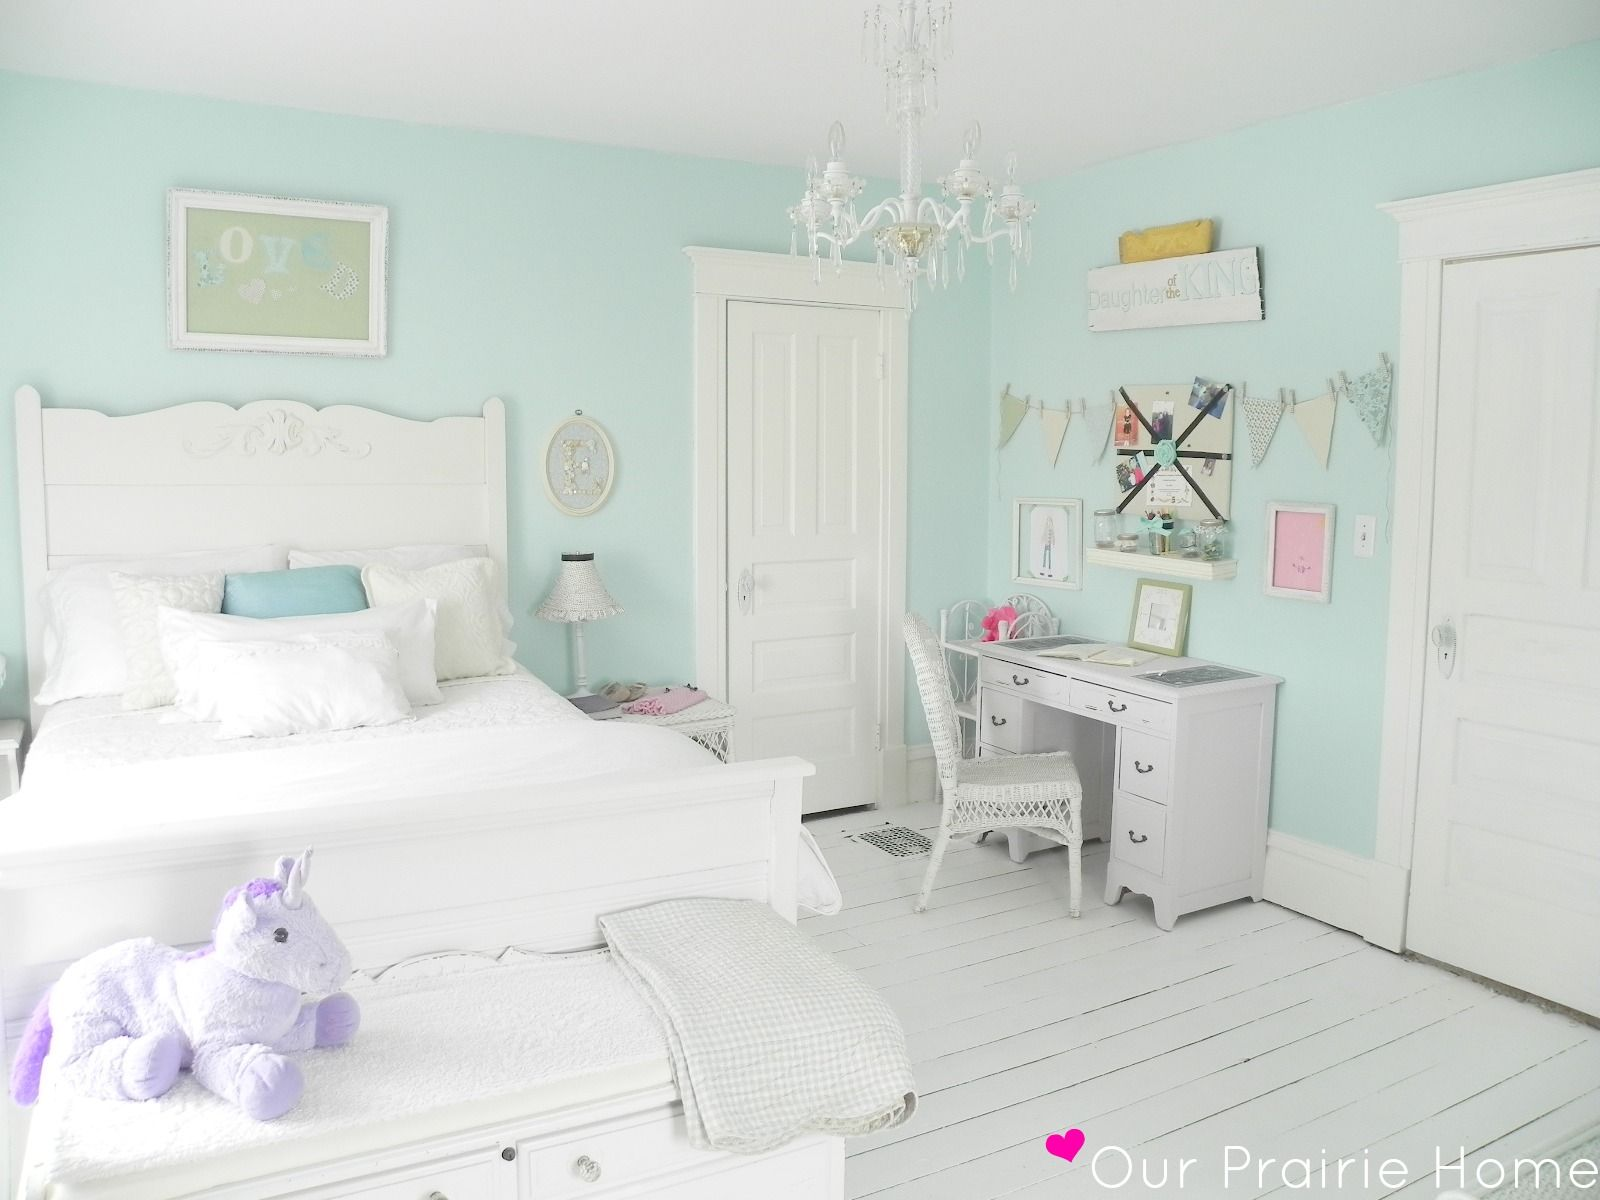 furniture for girls room. Mint Girl\u0027s Room...I Want To Do C\u0027s Room With White-washed Floors And A Beautiful Clean Color Like This. Furniture For Girls R